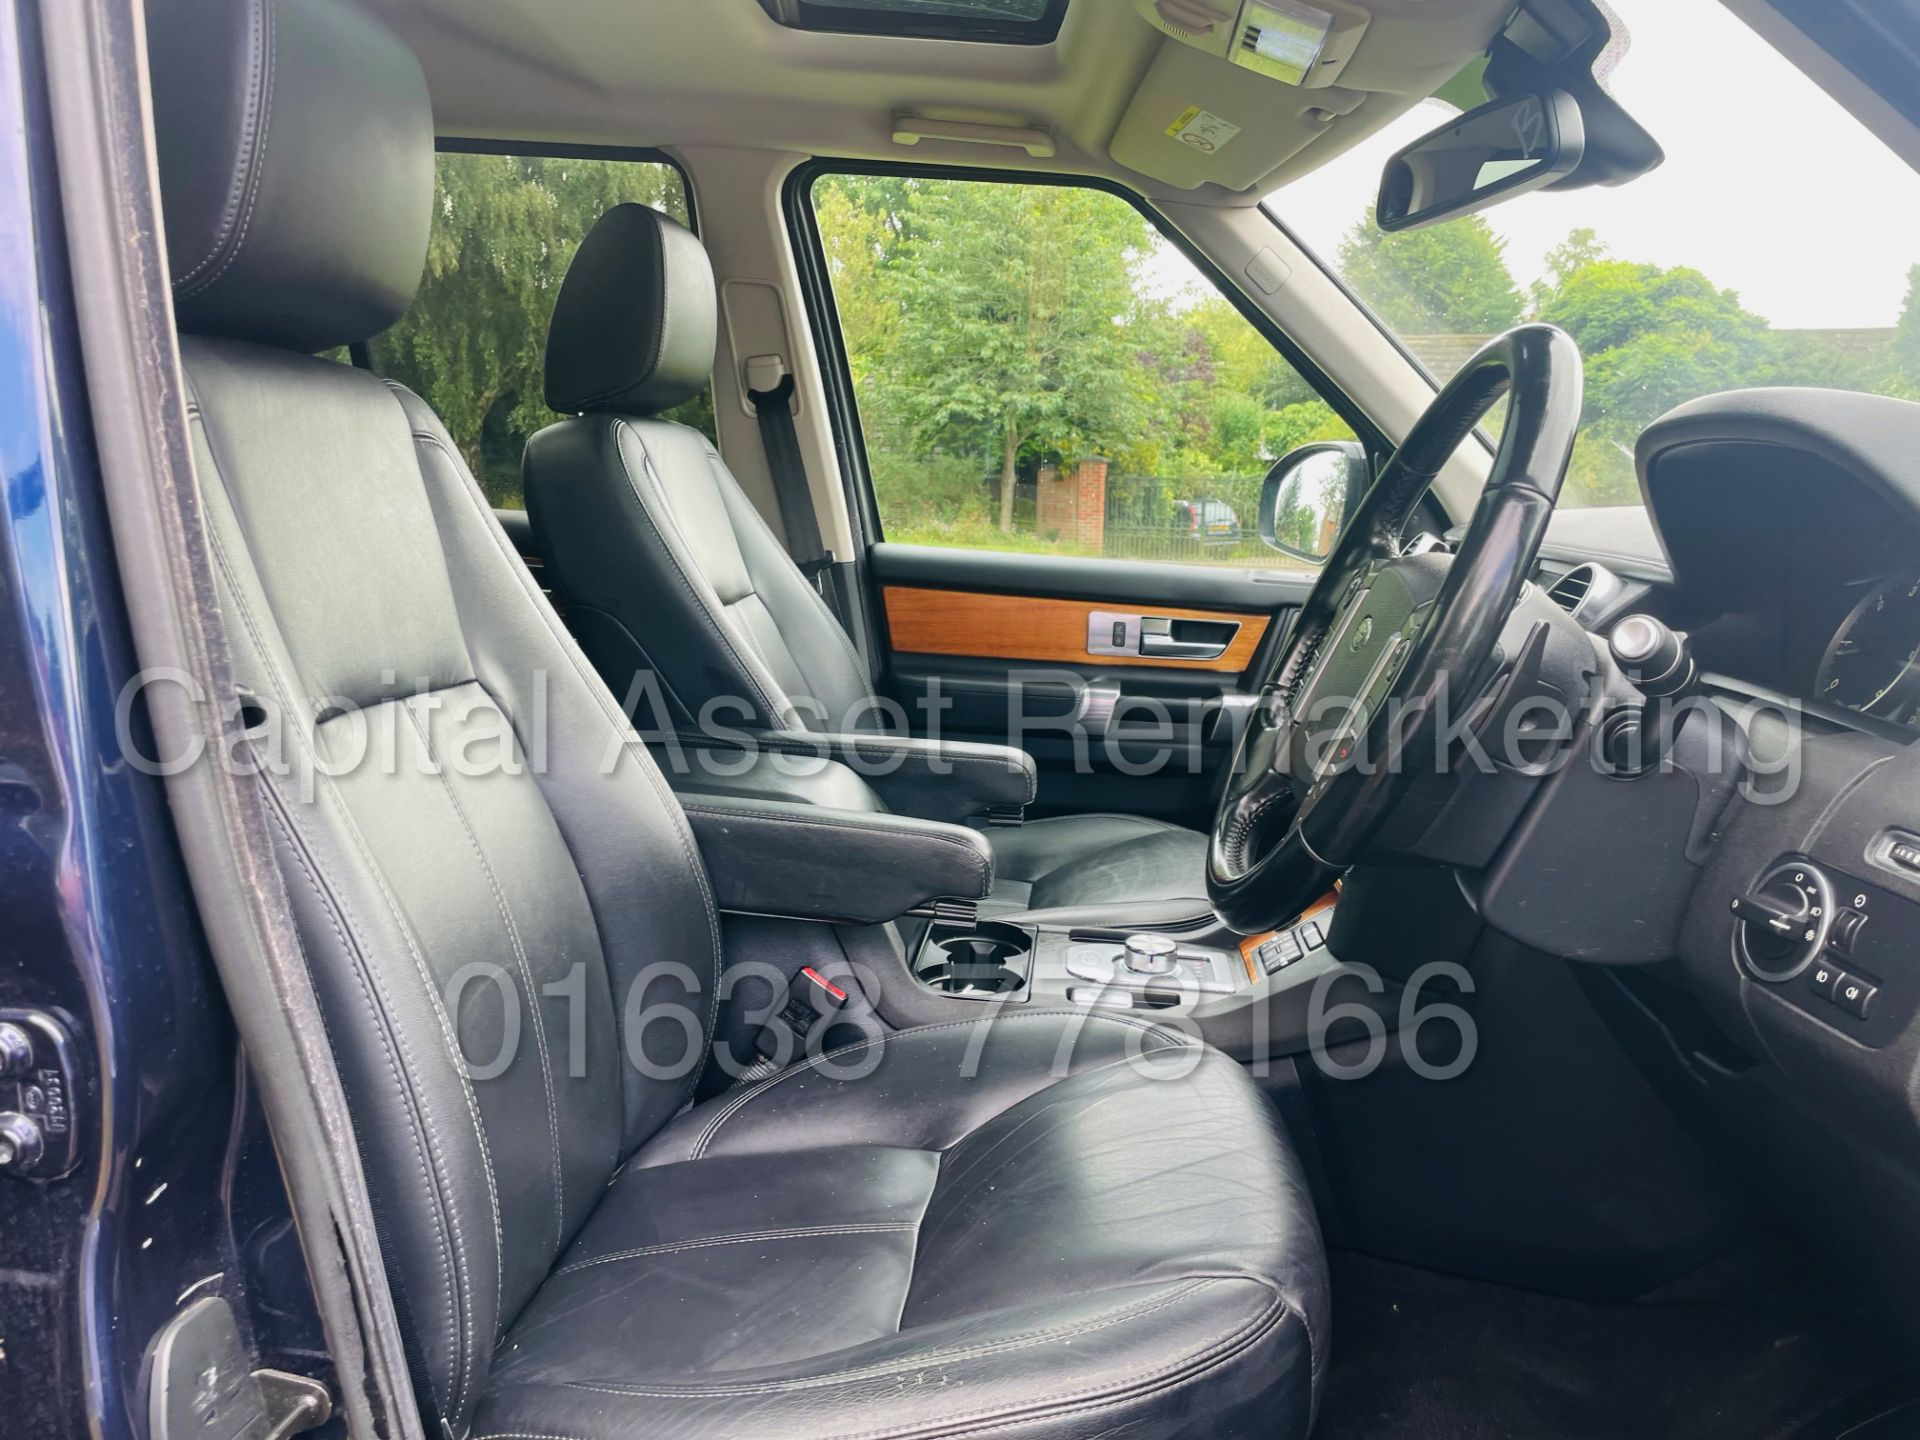 LAND ROVER DISCOVERY 4 *HSE* 7 SEATER SUV (2014 - NEW MODEL) '3.0 SDV6 - 255 BHP - 8 SPEED AUTO' - Image 43 of 61